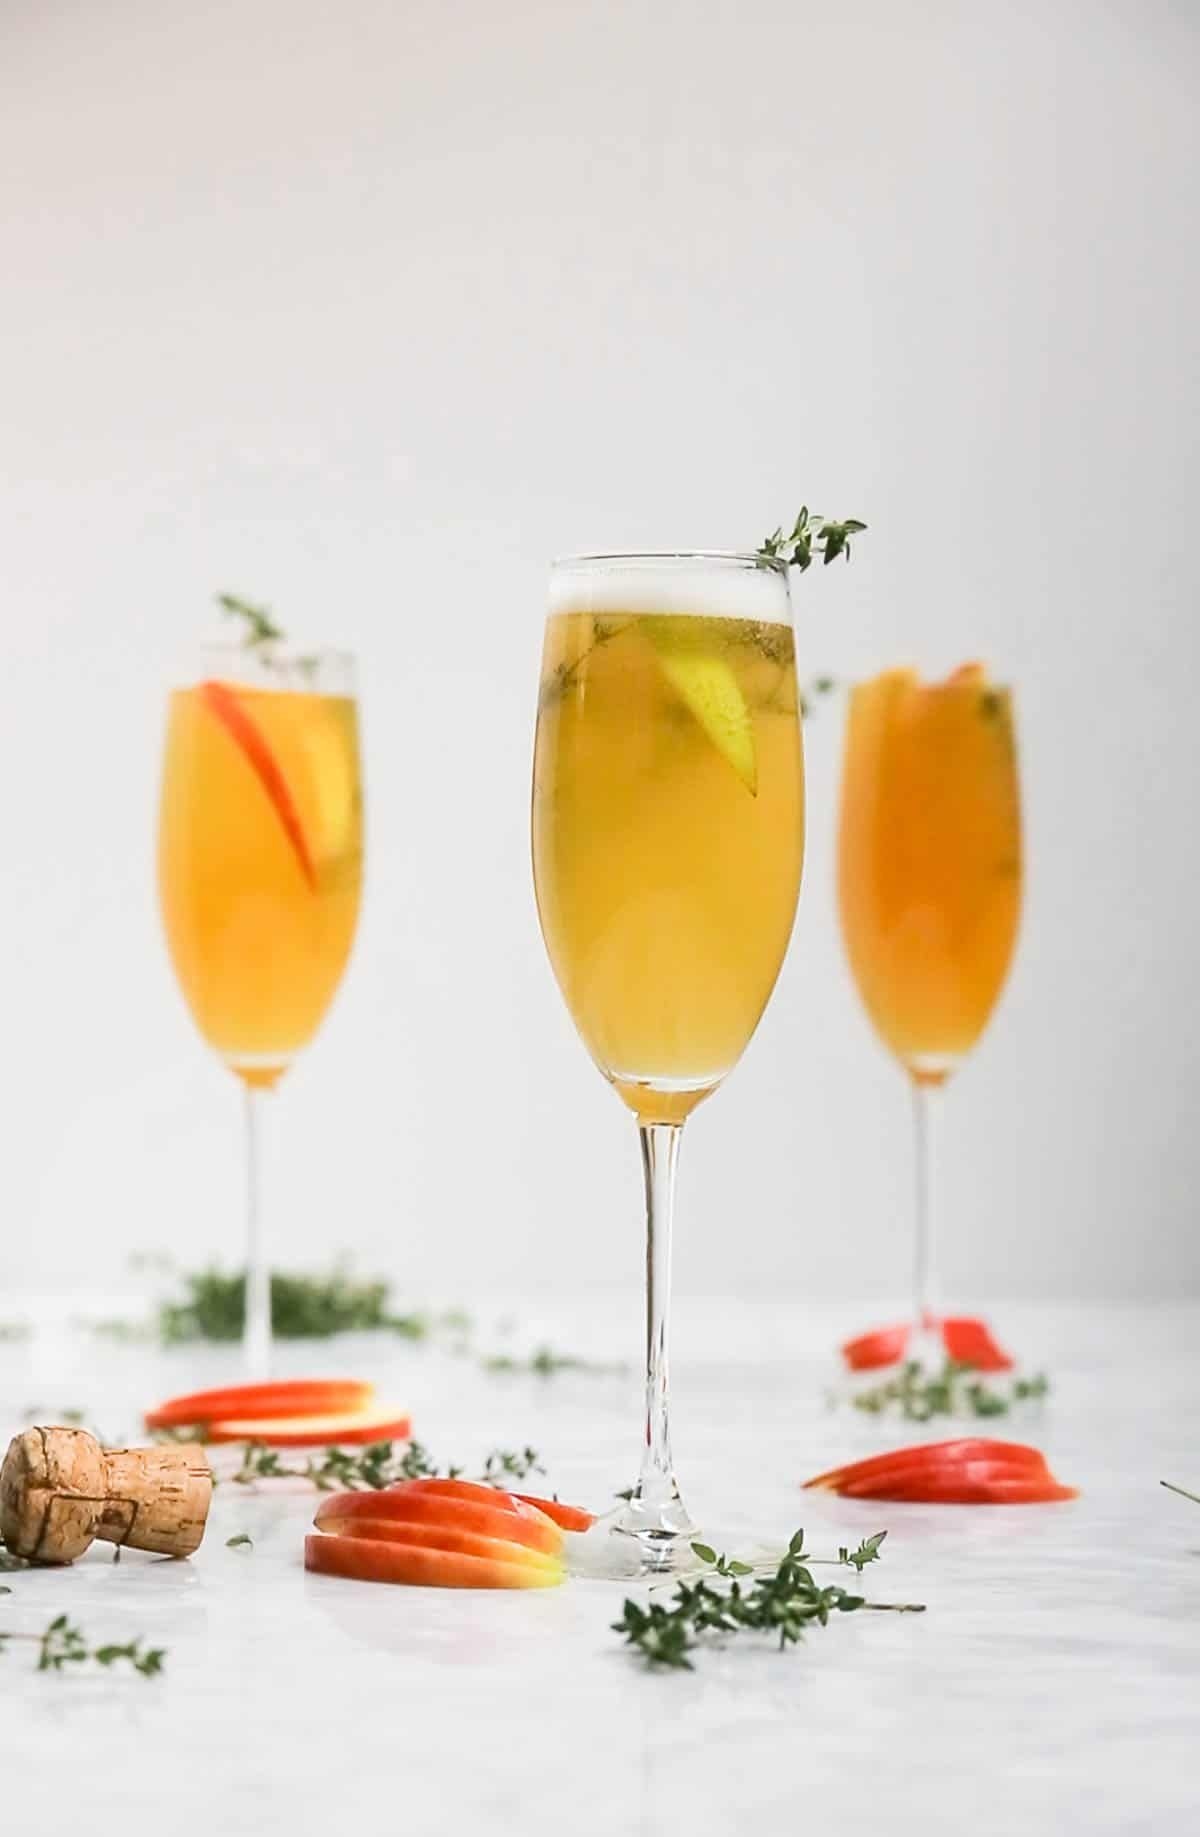 Apple Cider Thyme Mimosa Recipe (With images) Gluten